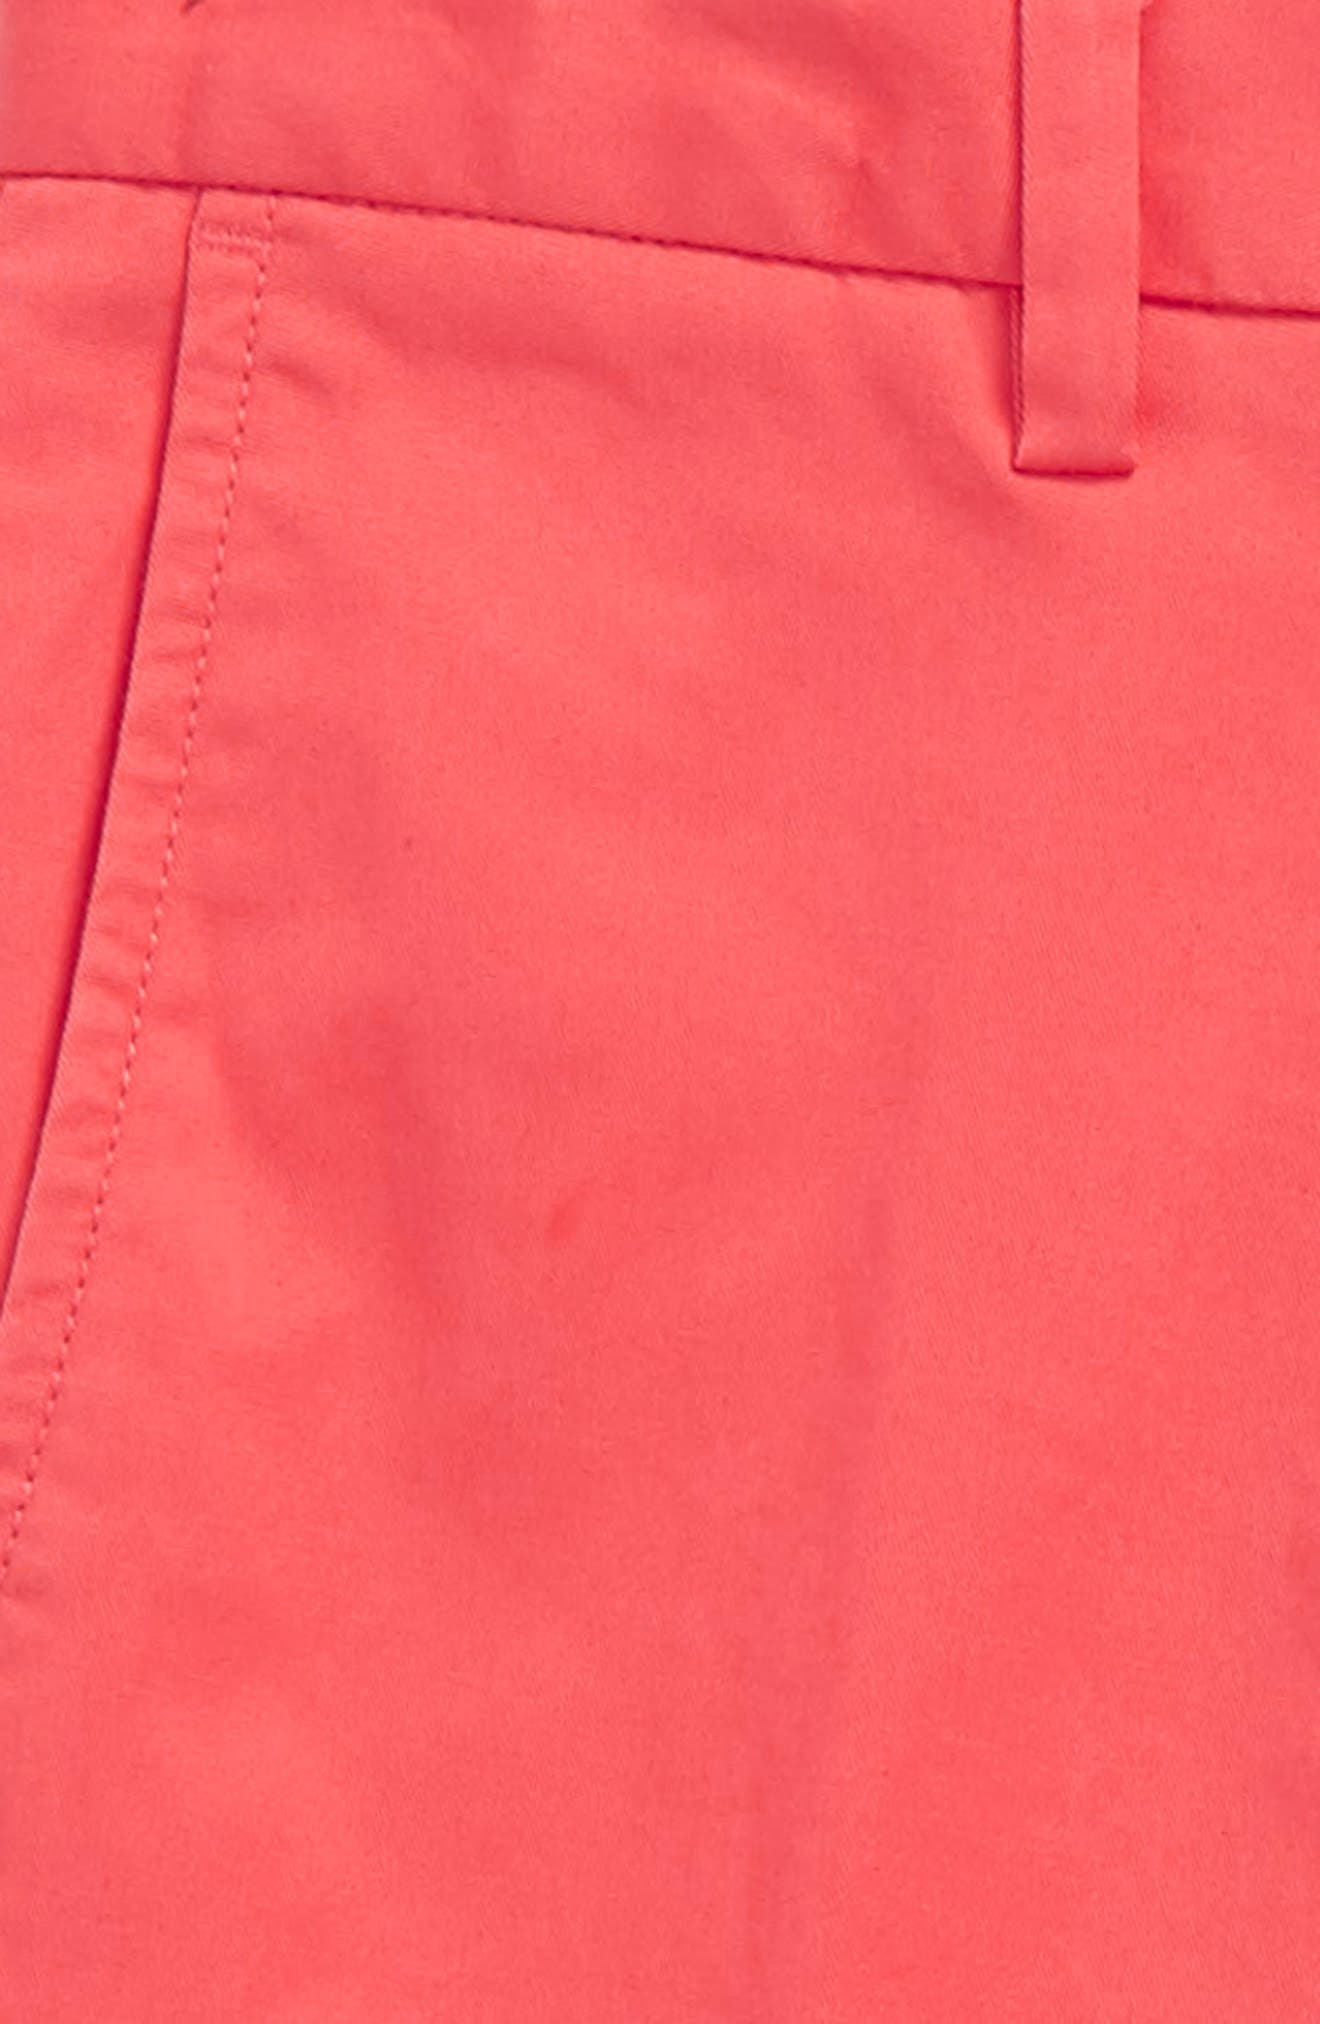 Slim Fit Stretch Chino Pants,                             Alternate thumbnail 10, color,